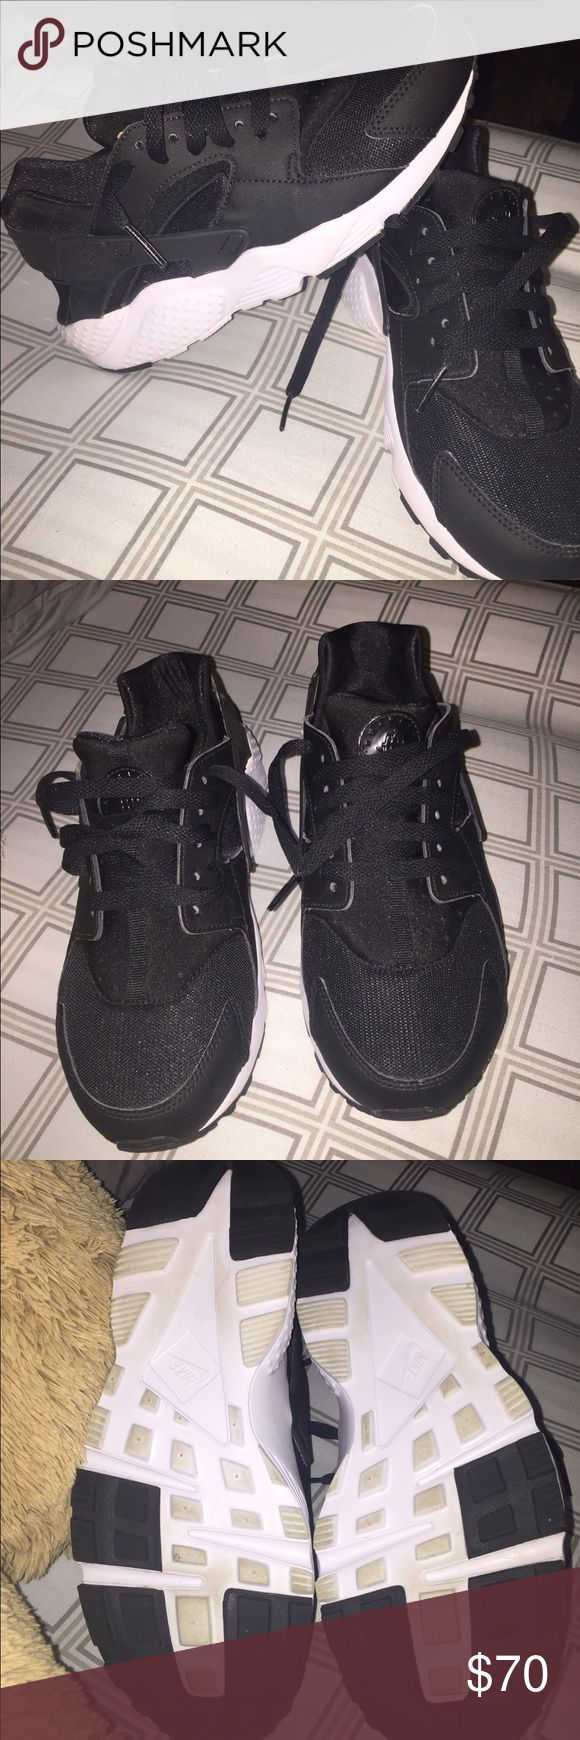 Nike Huarache youth Nike Huarache black and white. Worn once, slight wear on the bottom. Still have the box. They run small and didn't fit me. Nike Shoes Slippers